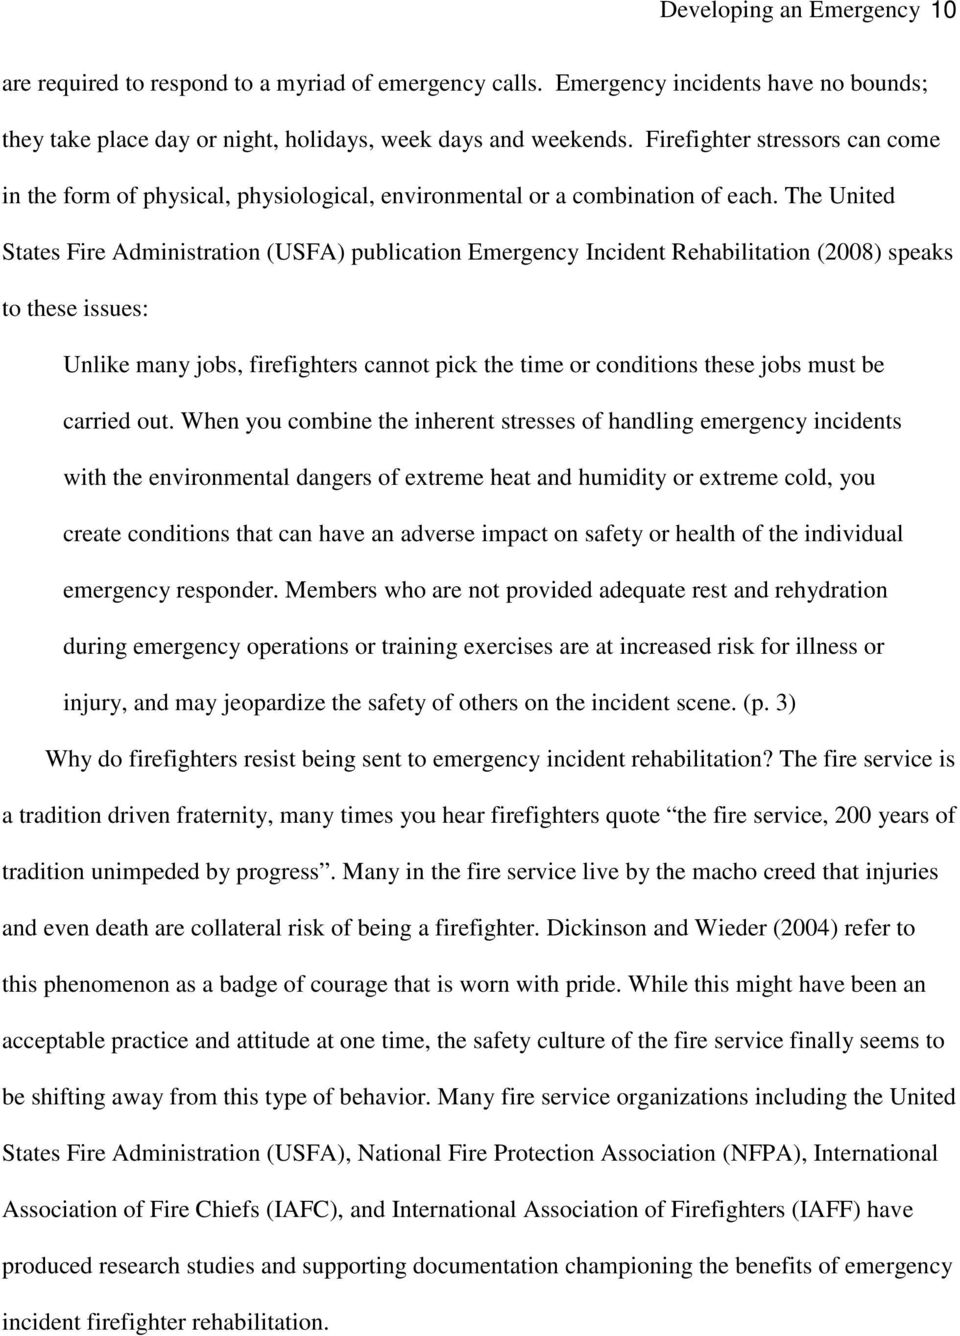 The United States Fire Administration (USFA) publication Emergency Incident Rehabilitation (2008) speaks to these issues: Unlike many jobs, firefighters cannot pick the time or conditions these jobs